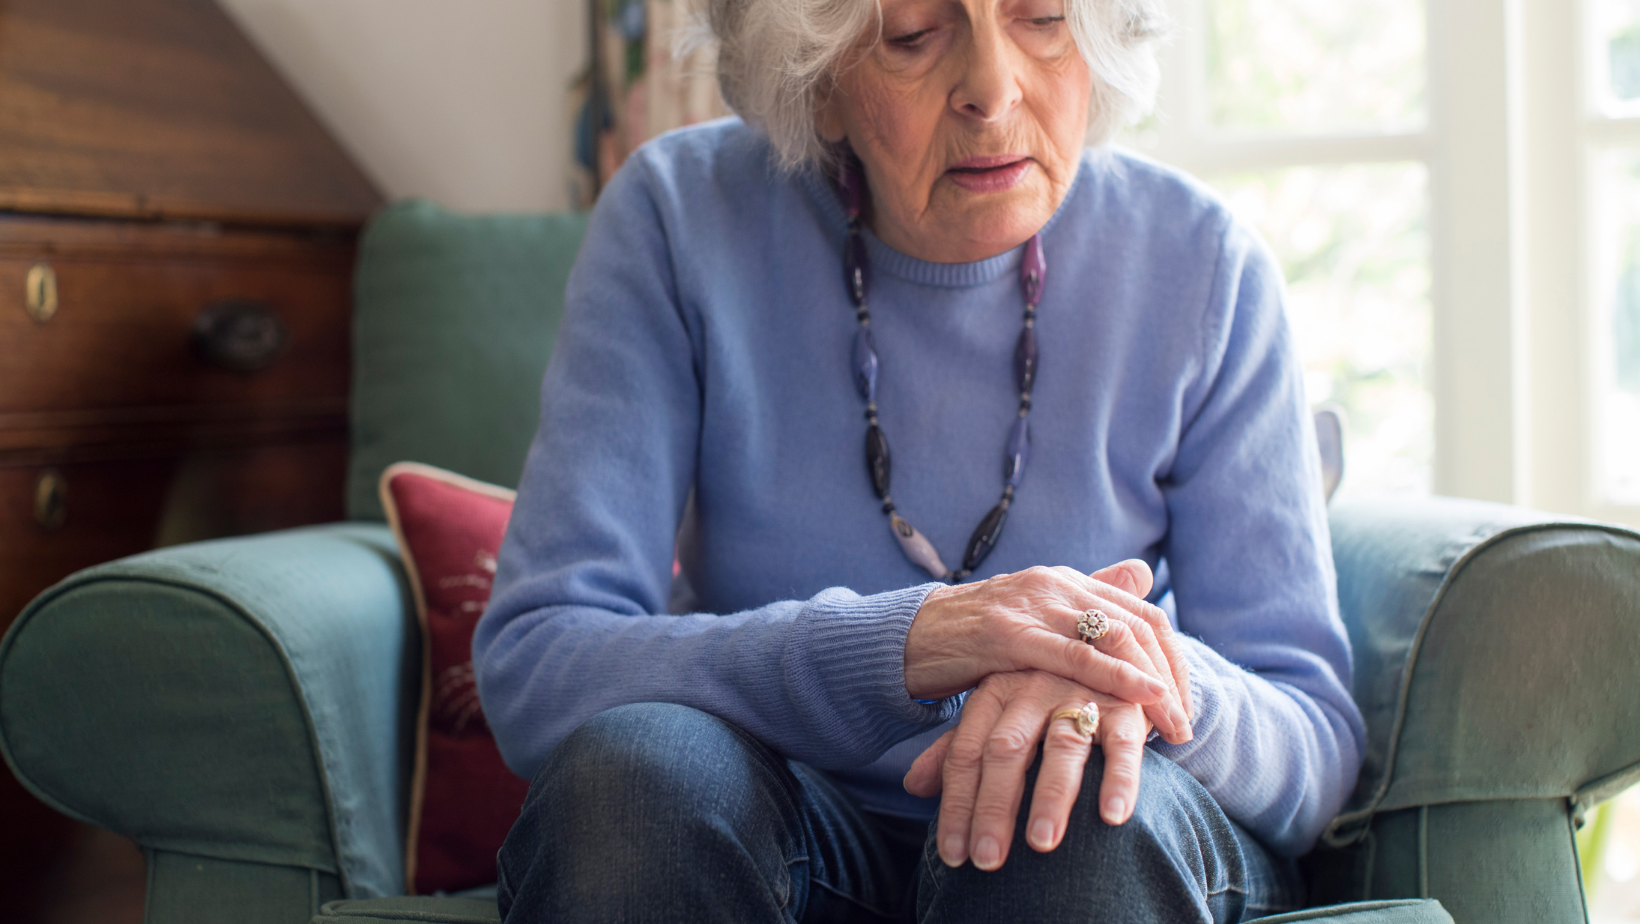 a older woman with Parkinson's, sitting in a chair, hunched over